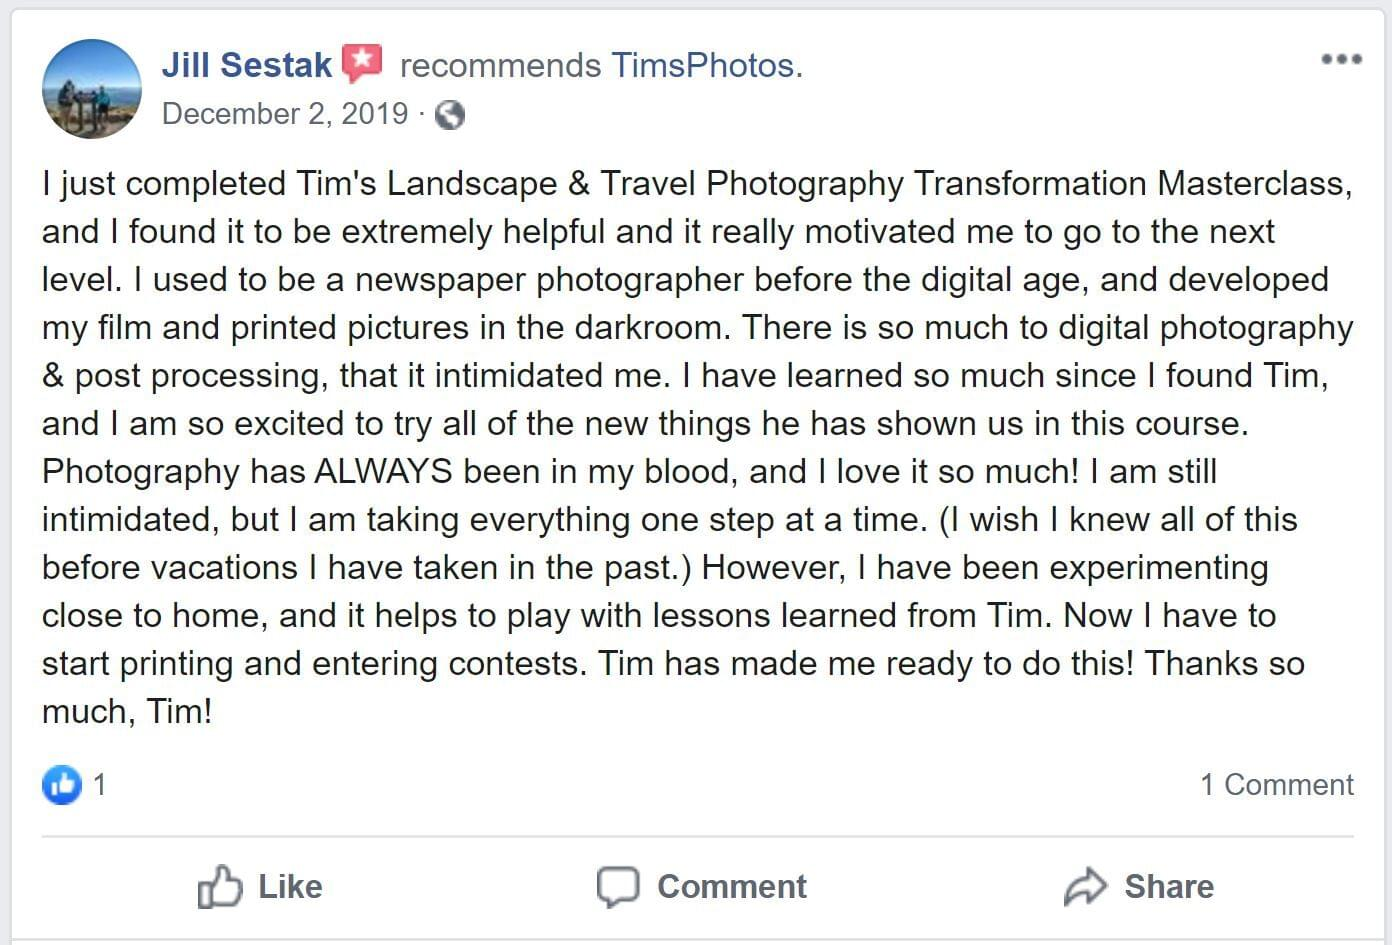 Jill sestak it;s extremely helpful tim shields photography transformation masterclass